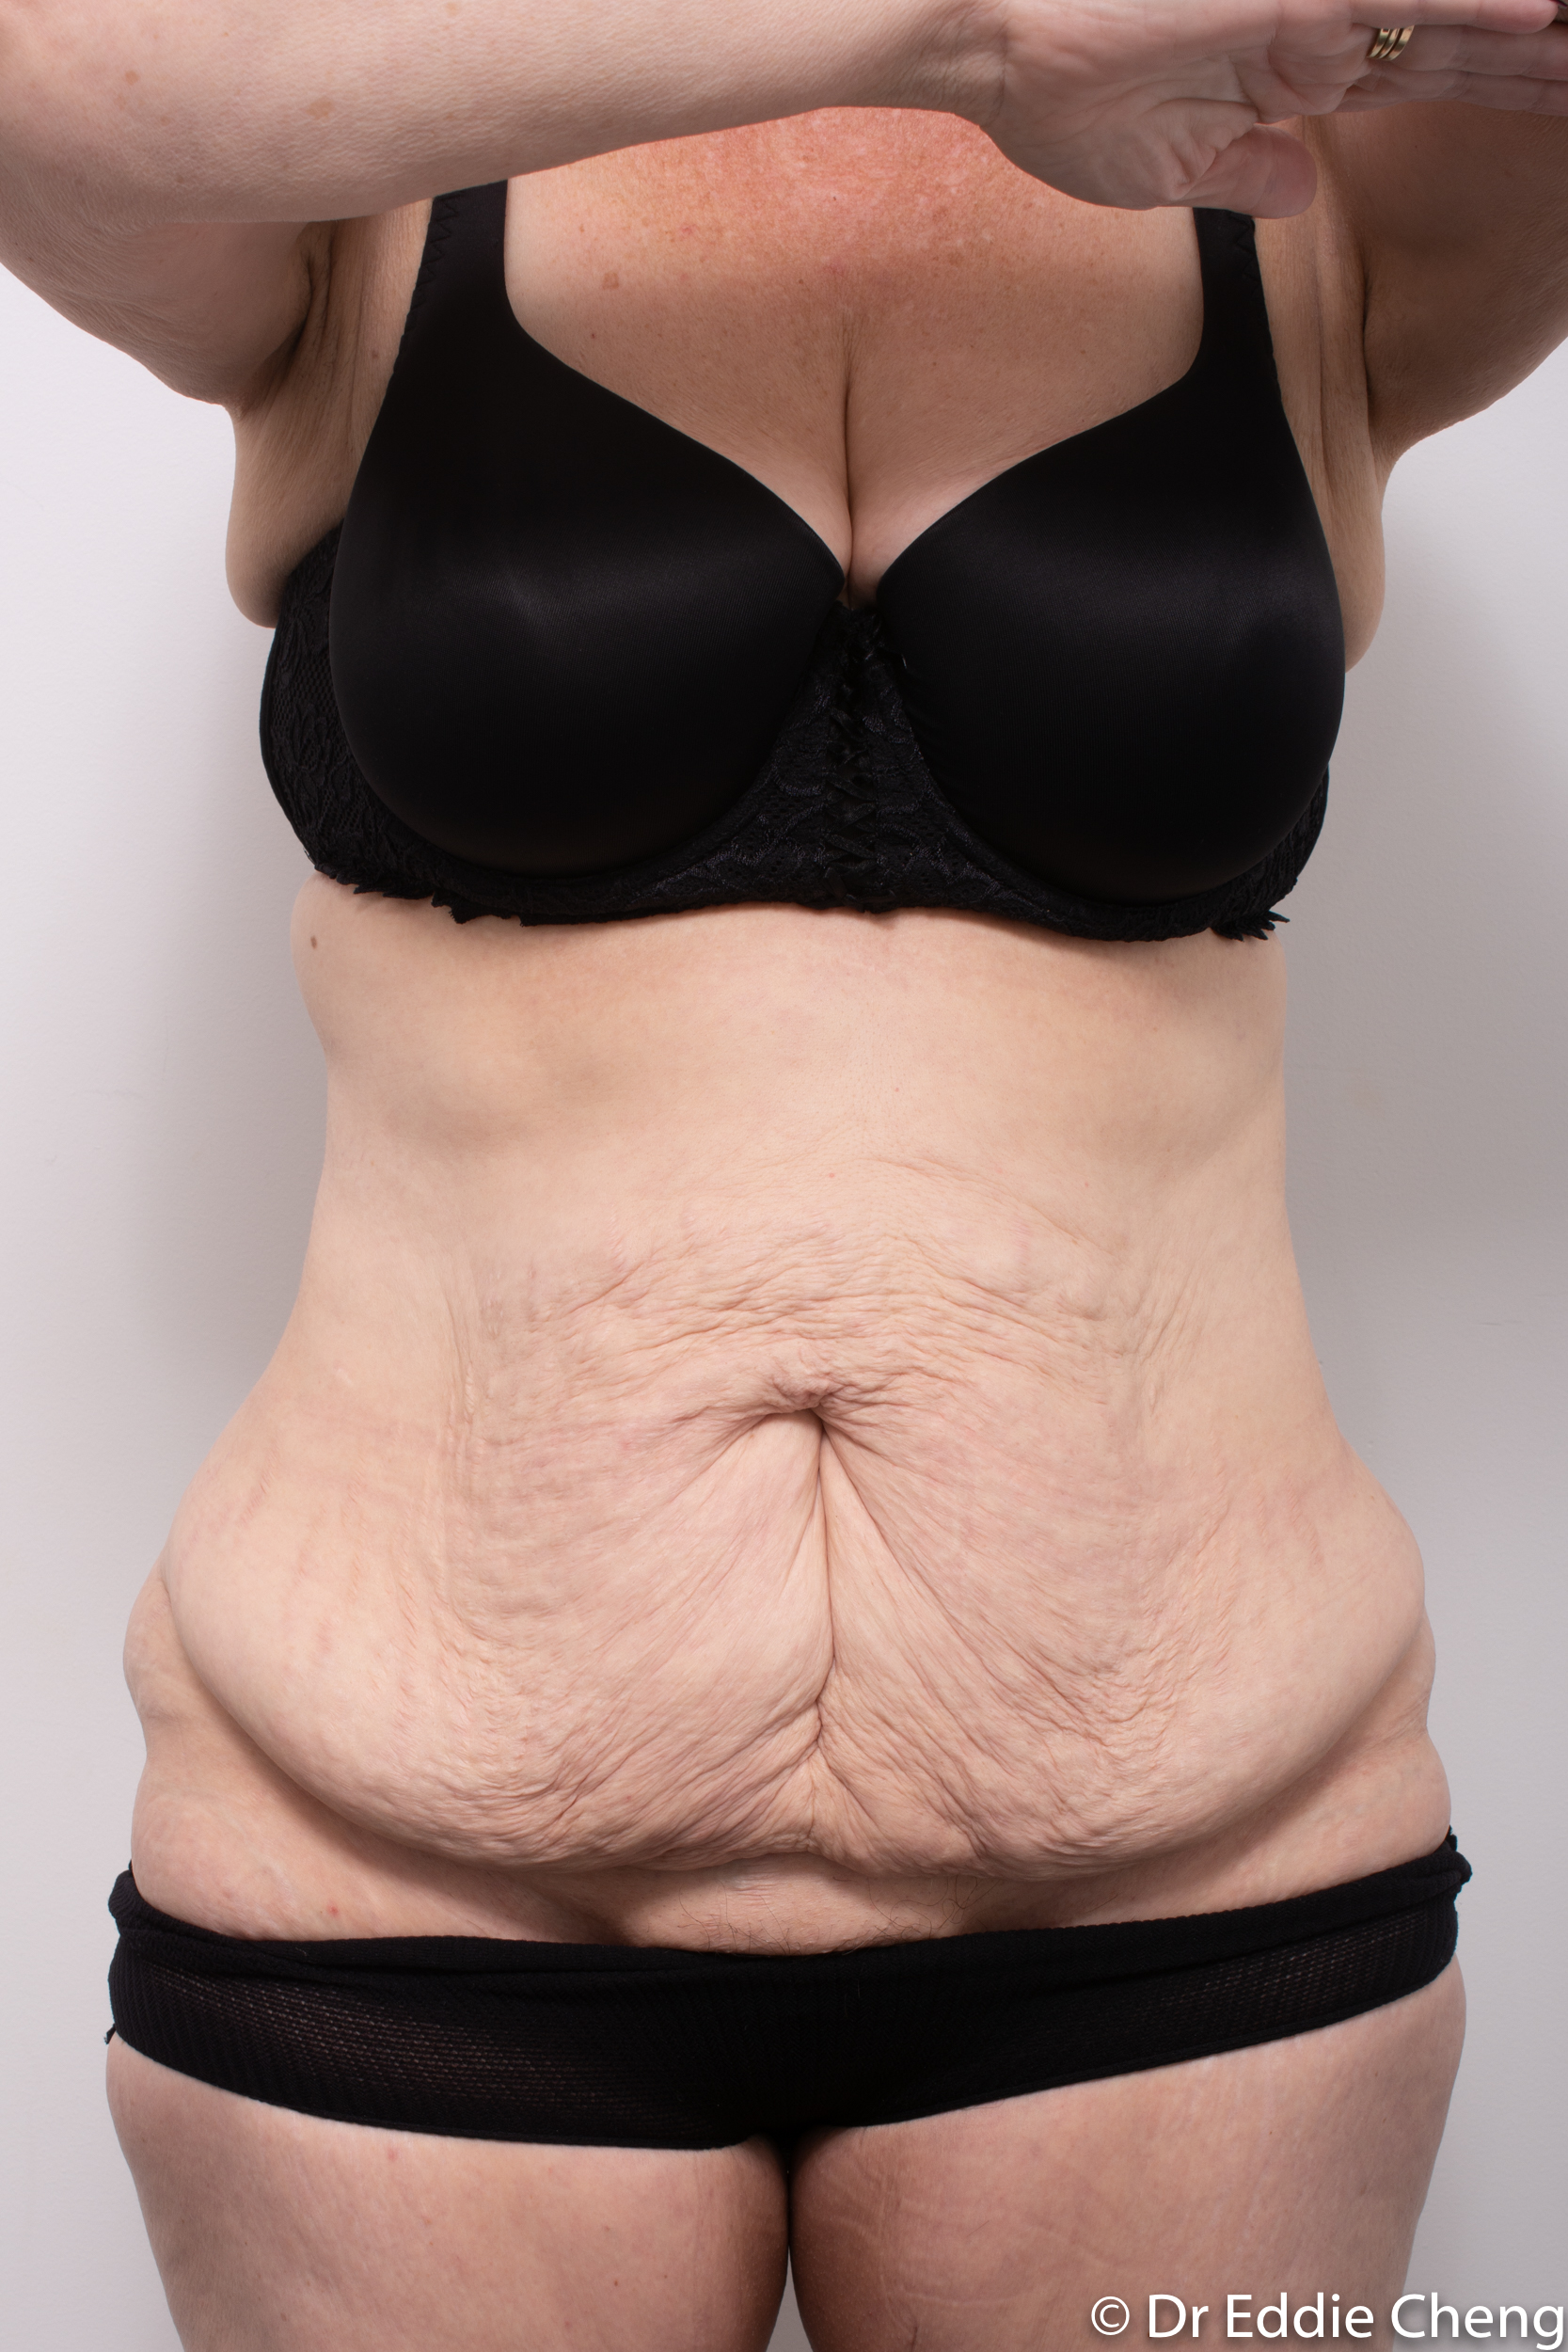 Body lift circumferential dr eddie cheng brisbane surgeon pre and post operative images -3